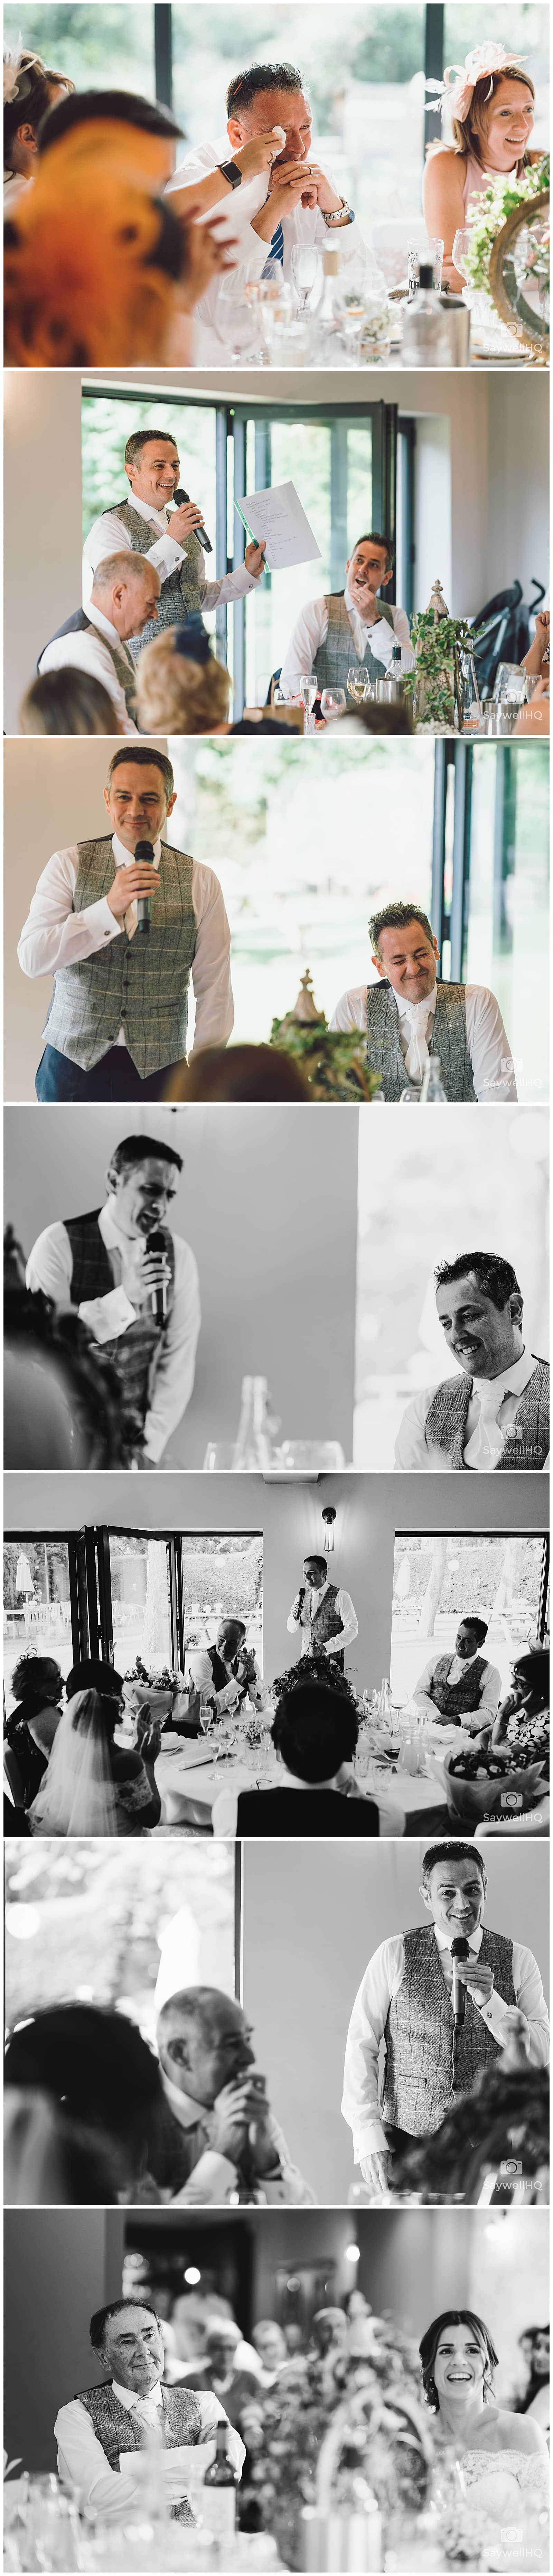 The Chequers Inn Woolsthorpe Wedding Photography - wedding speech reactions and early evening guest arrivals